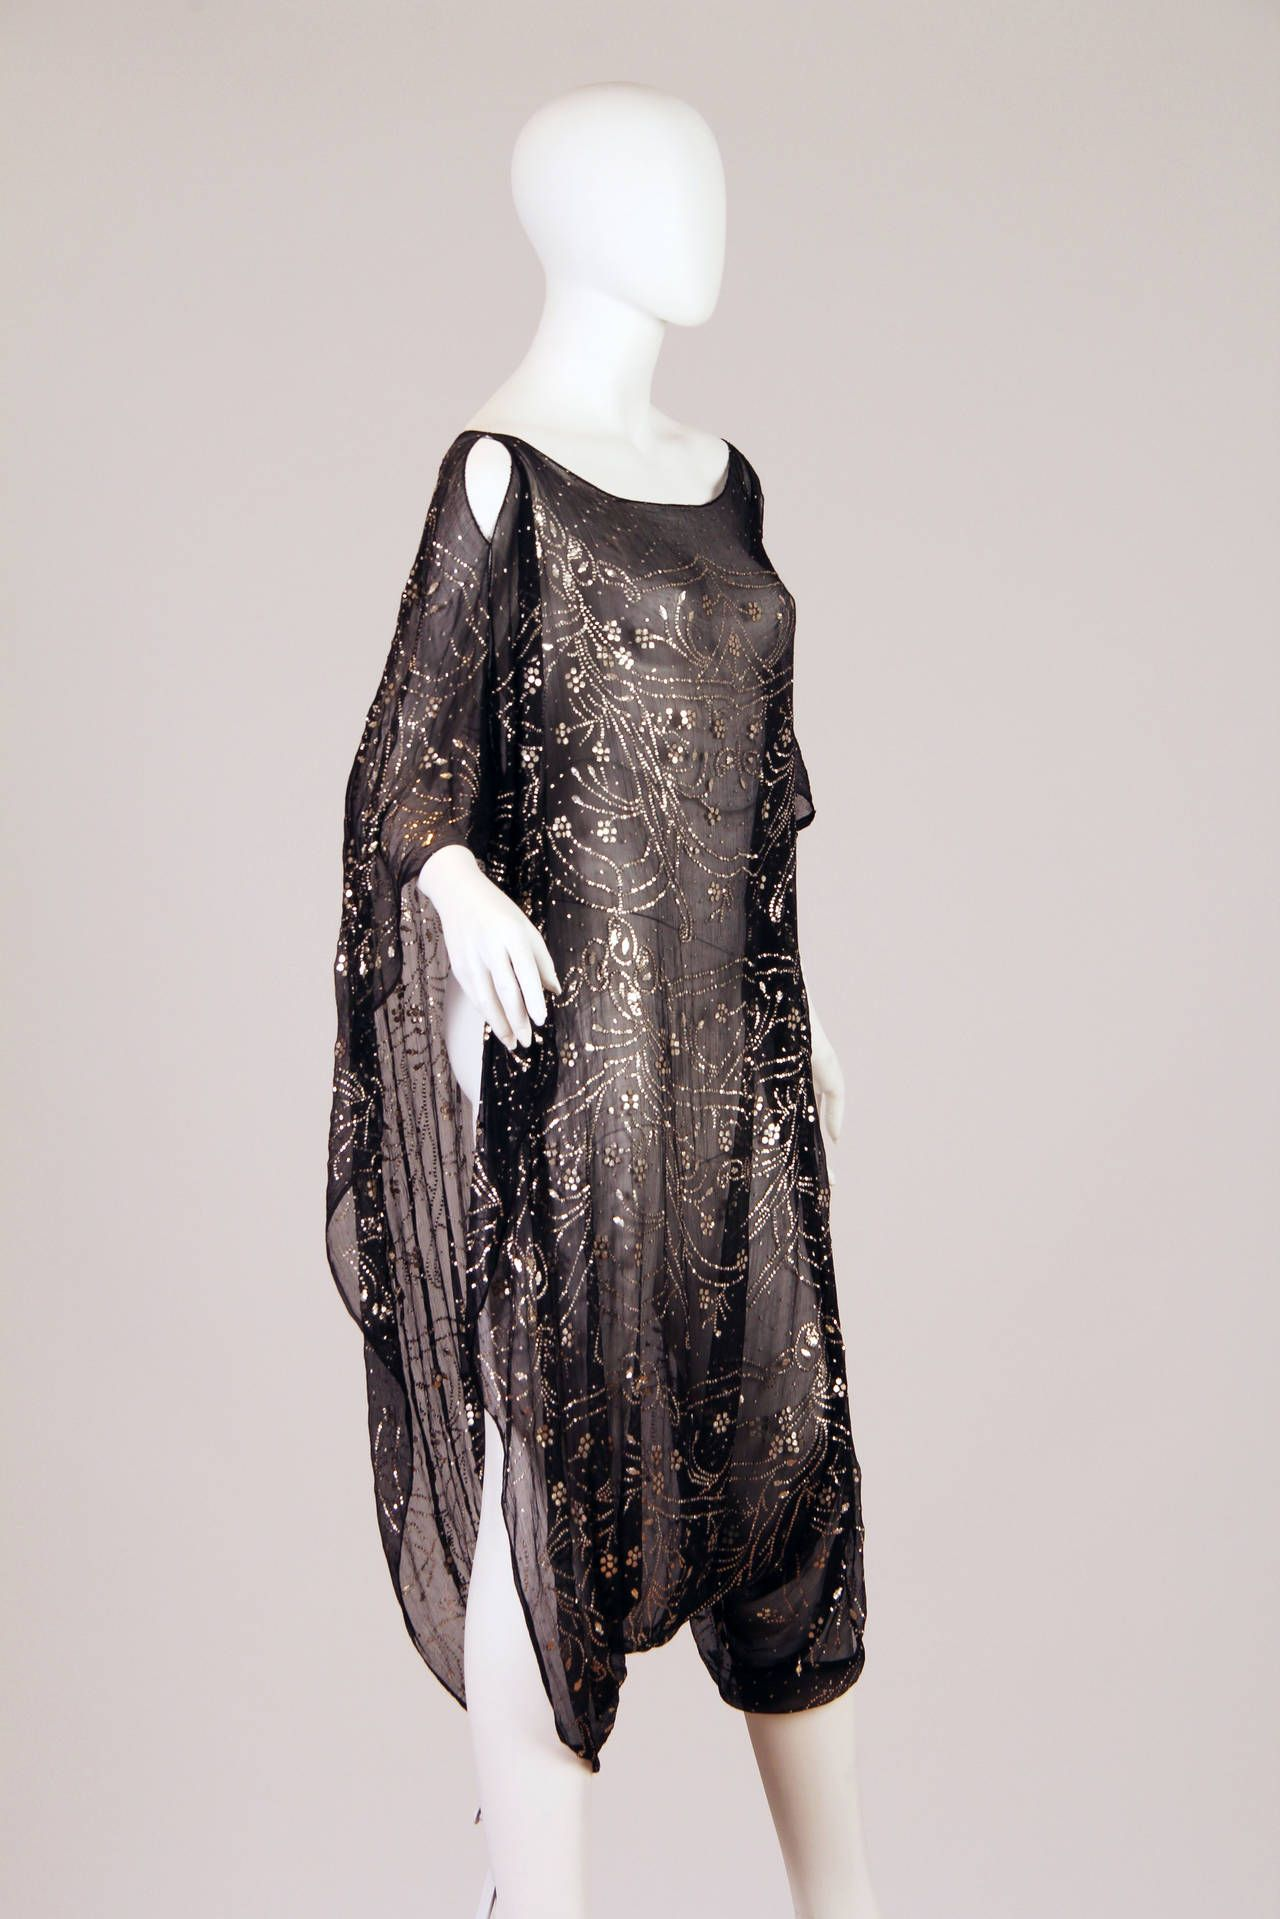 f1f3933bd2a8b Interesting 1920s Assuit Technique Silk Chiffon Tunic Dress from ...